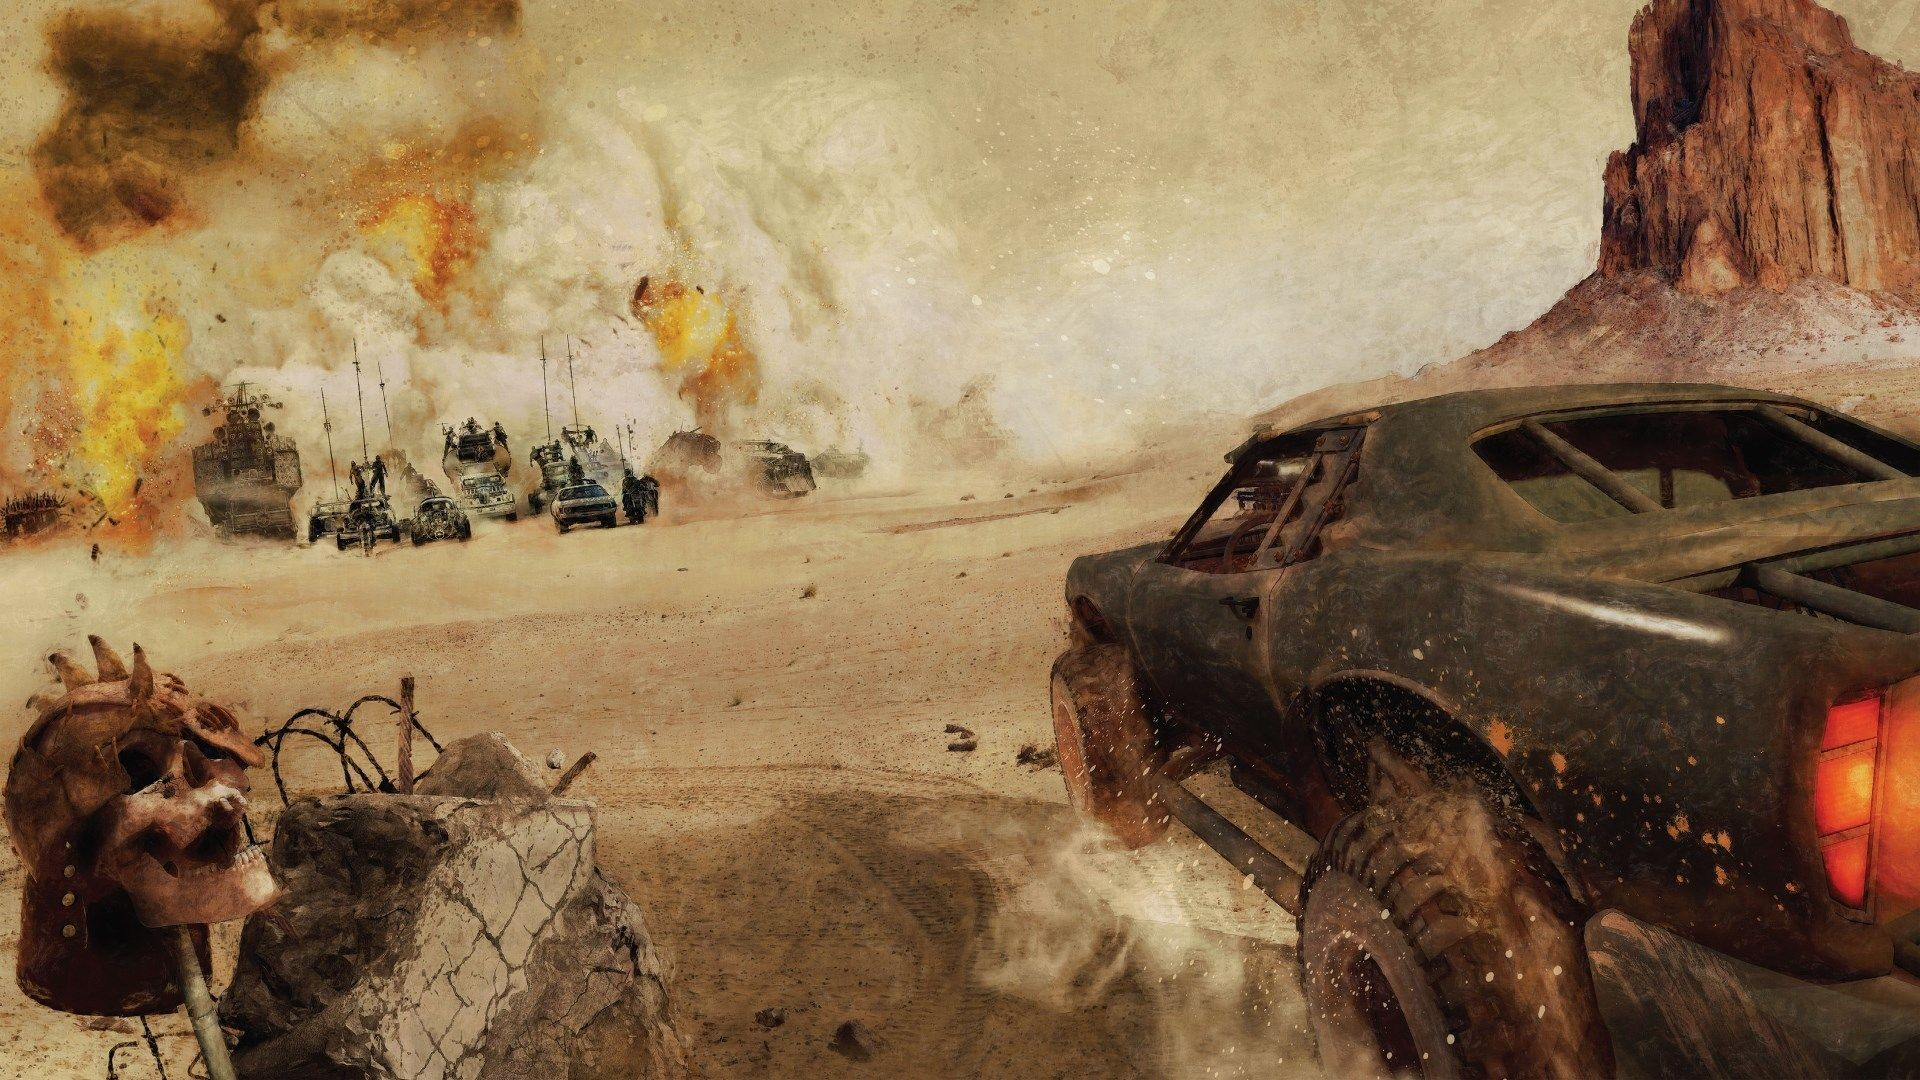 1920x1080 #1573541, mad max fury road category - Backgrounds High Resolution: mad max fury  road wallpaper